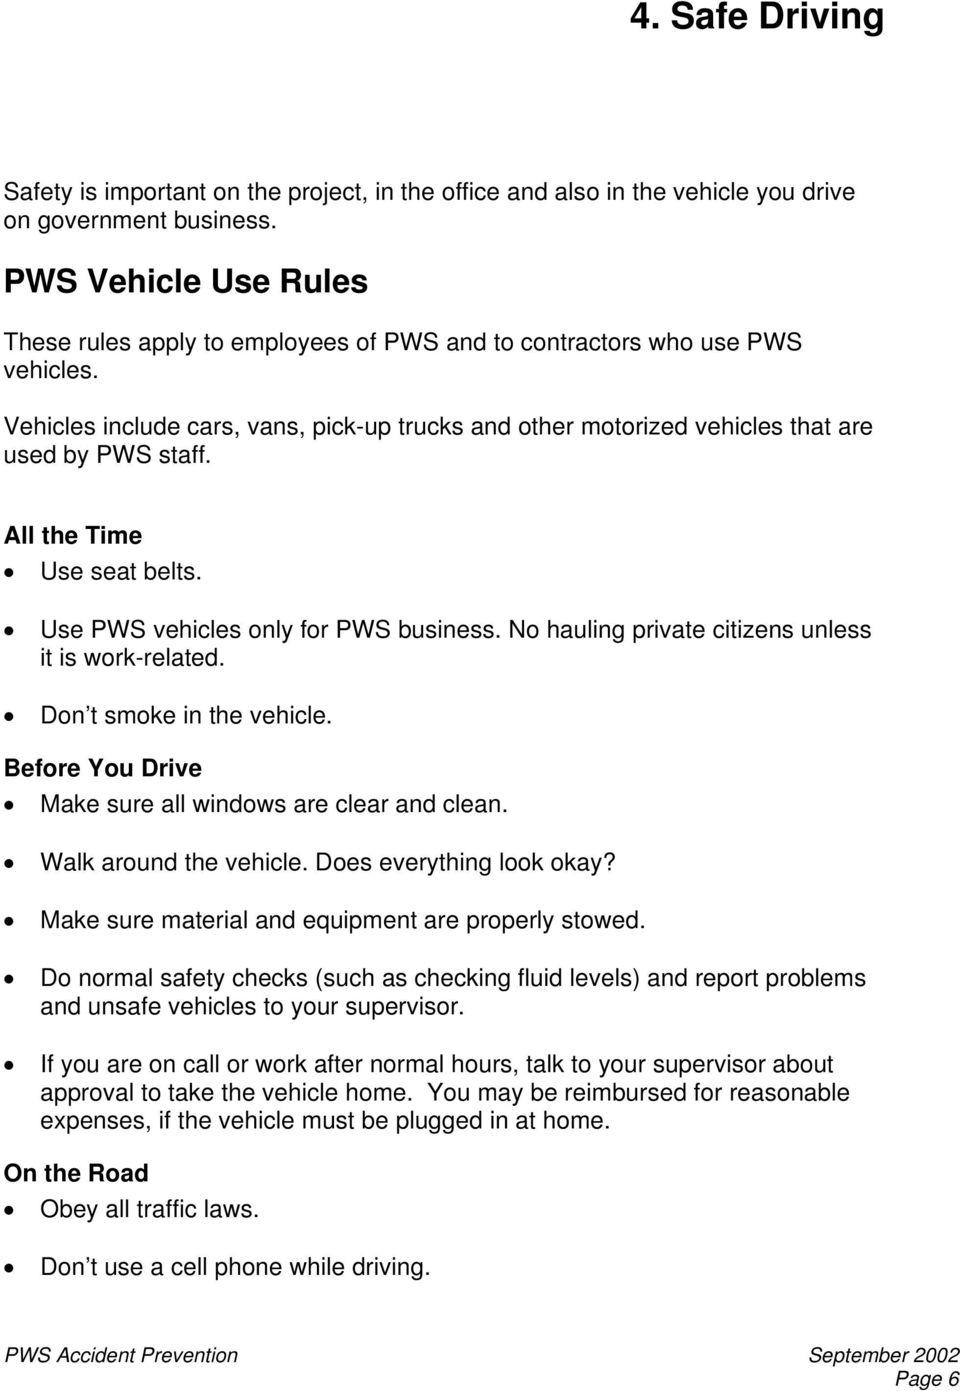 Vehicles include cars, vans, pick-up trucks and other motorized vehicles that are used by PWS staff. All the Time Use seat belts. Use PWS vehicles only for PWS business.